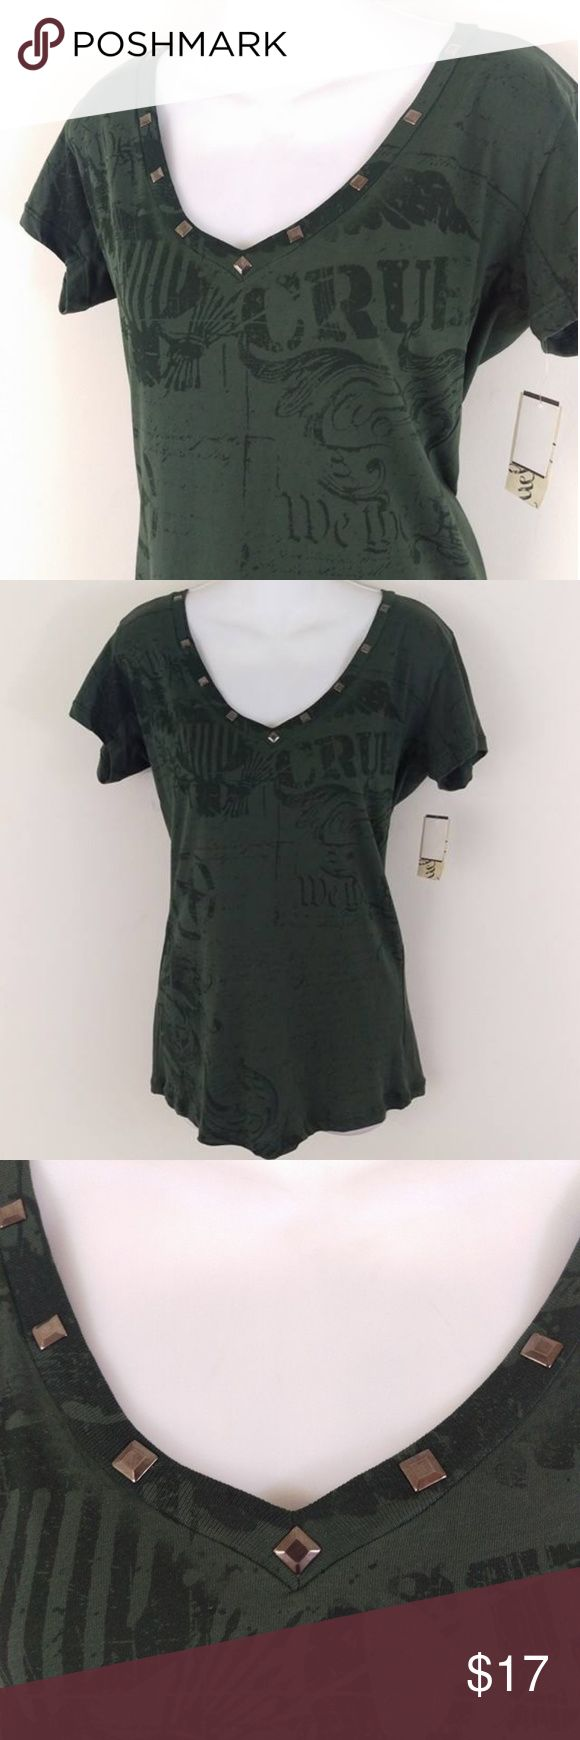 "Cruel Girl Army Green Studded Tee Grunge NWT Sexy v neck with studs. Army green soft. 100% cotton. Measurements are flat lay and the best way to determine proper sizing. Chest across at armpits 19"". Waist across 16-1/2"". Bottom hem 19*. Length from shoulder 27"".  New with tags. Smoke free. RT1 Cruel Girl Tops Tees - Short Sleeve"